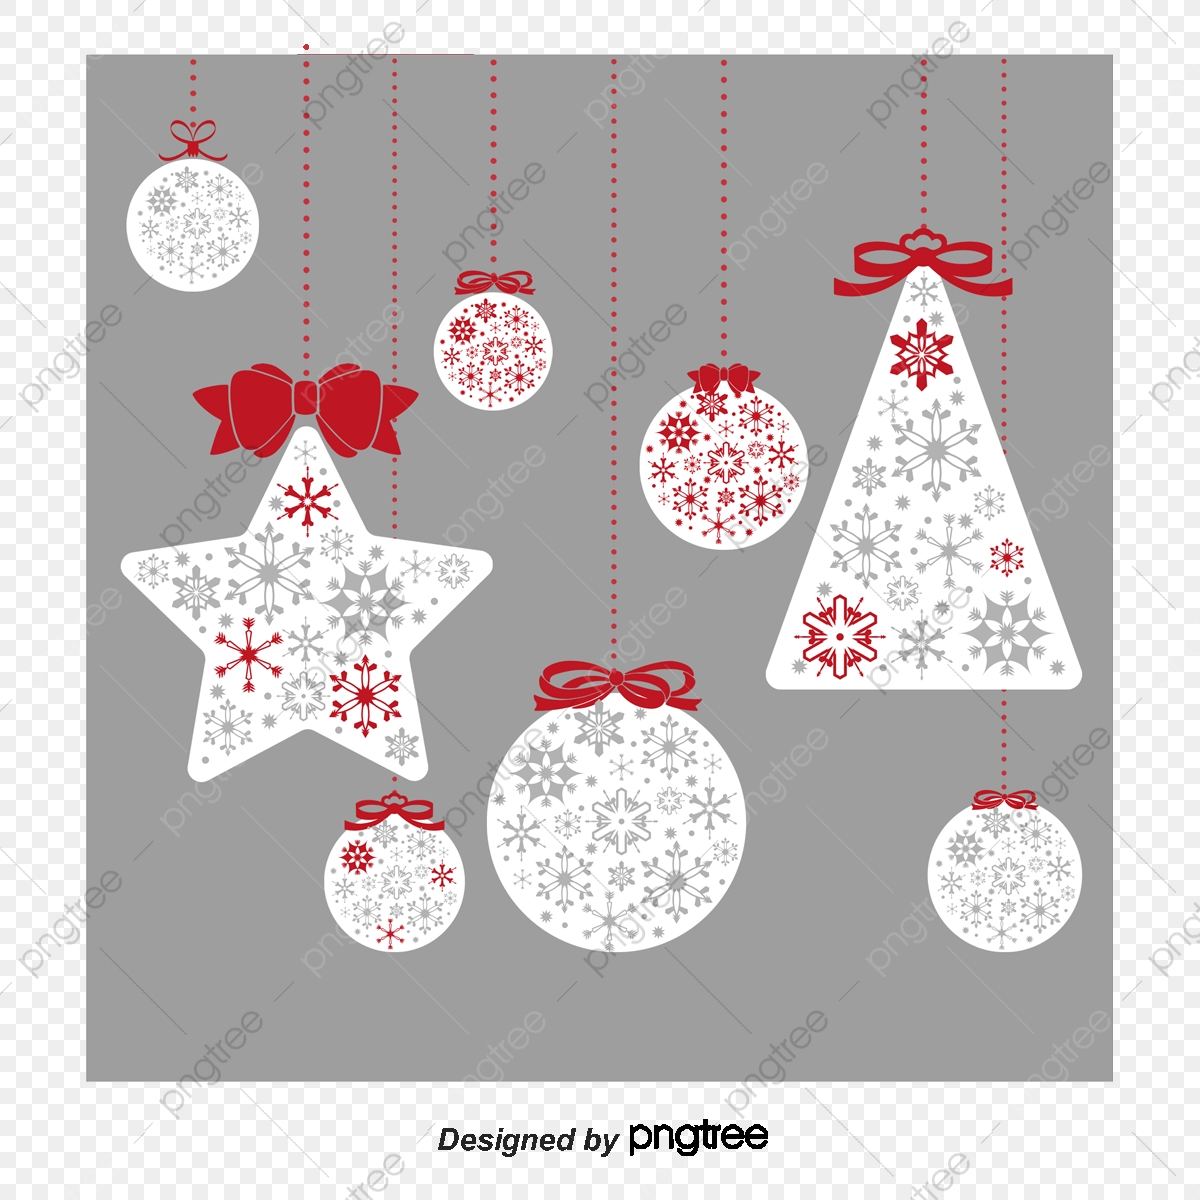 Vector Christmas Ornaments Christmas Pendant Decoration Png Transparent Clipart Image And Psd File For Free Download